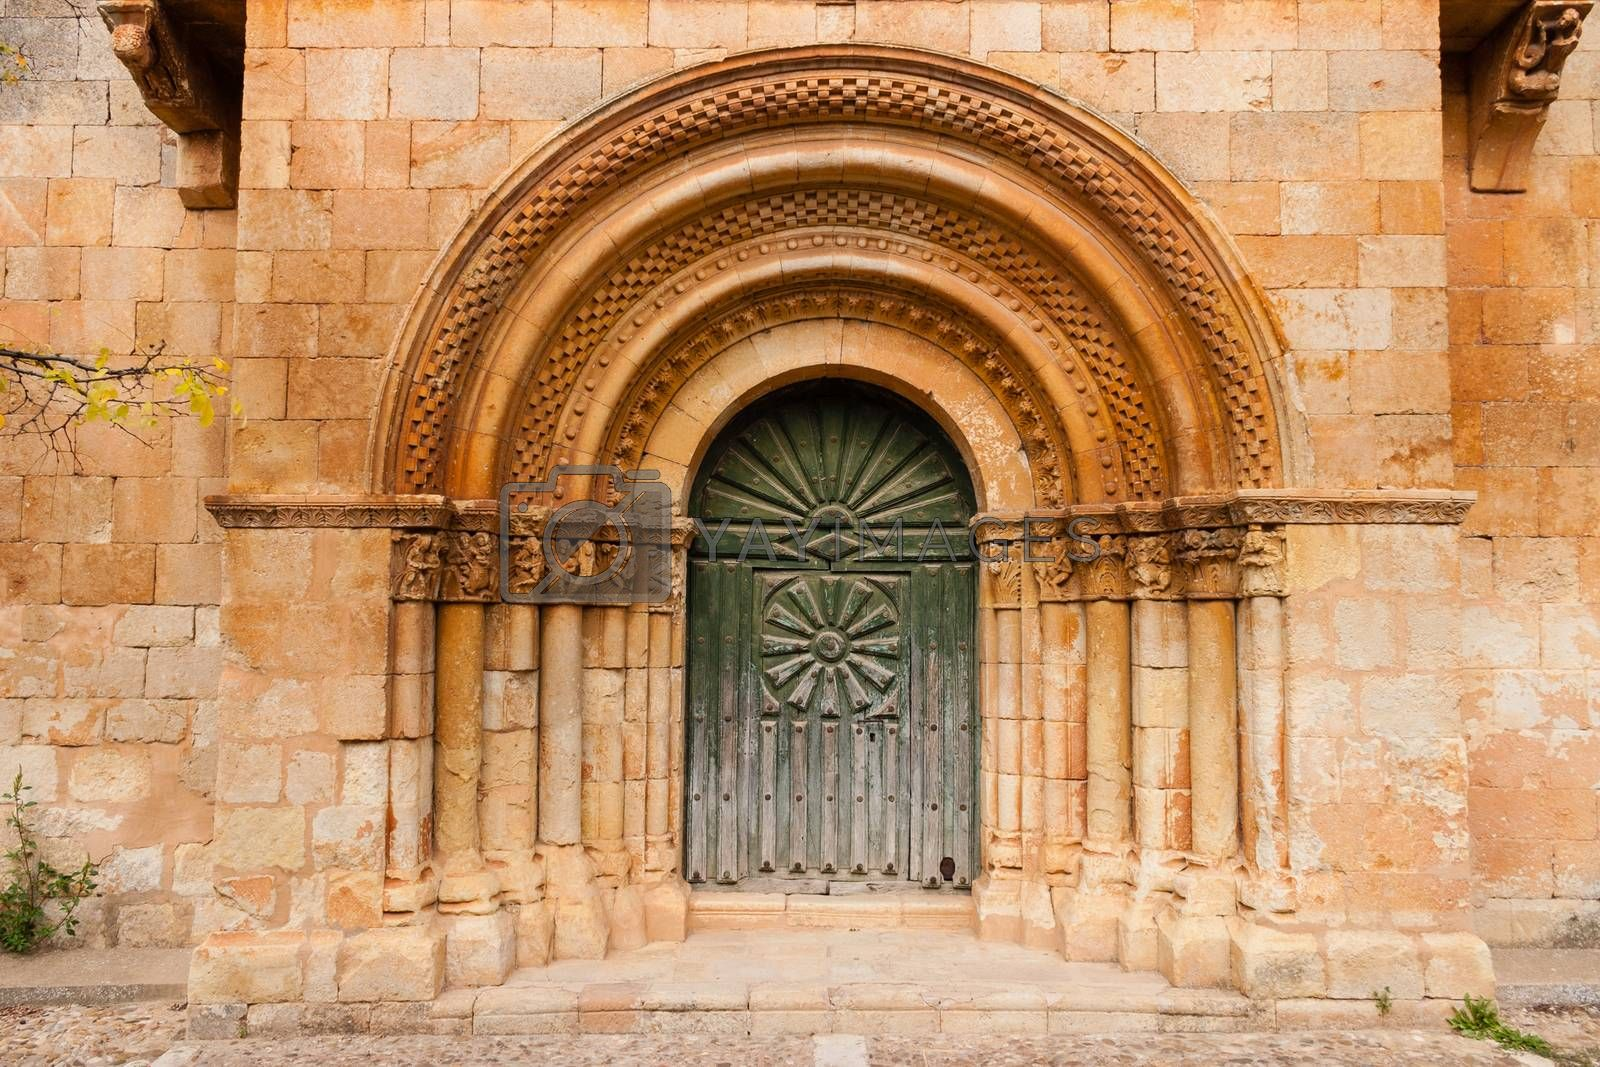 Romanesque portal with fine archivolts and beautiful door of the church in a small village called Moarves de Ojeda in the povince of Palencia  Spain